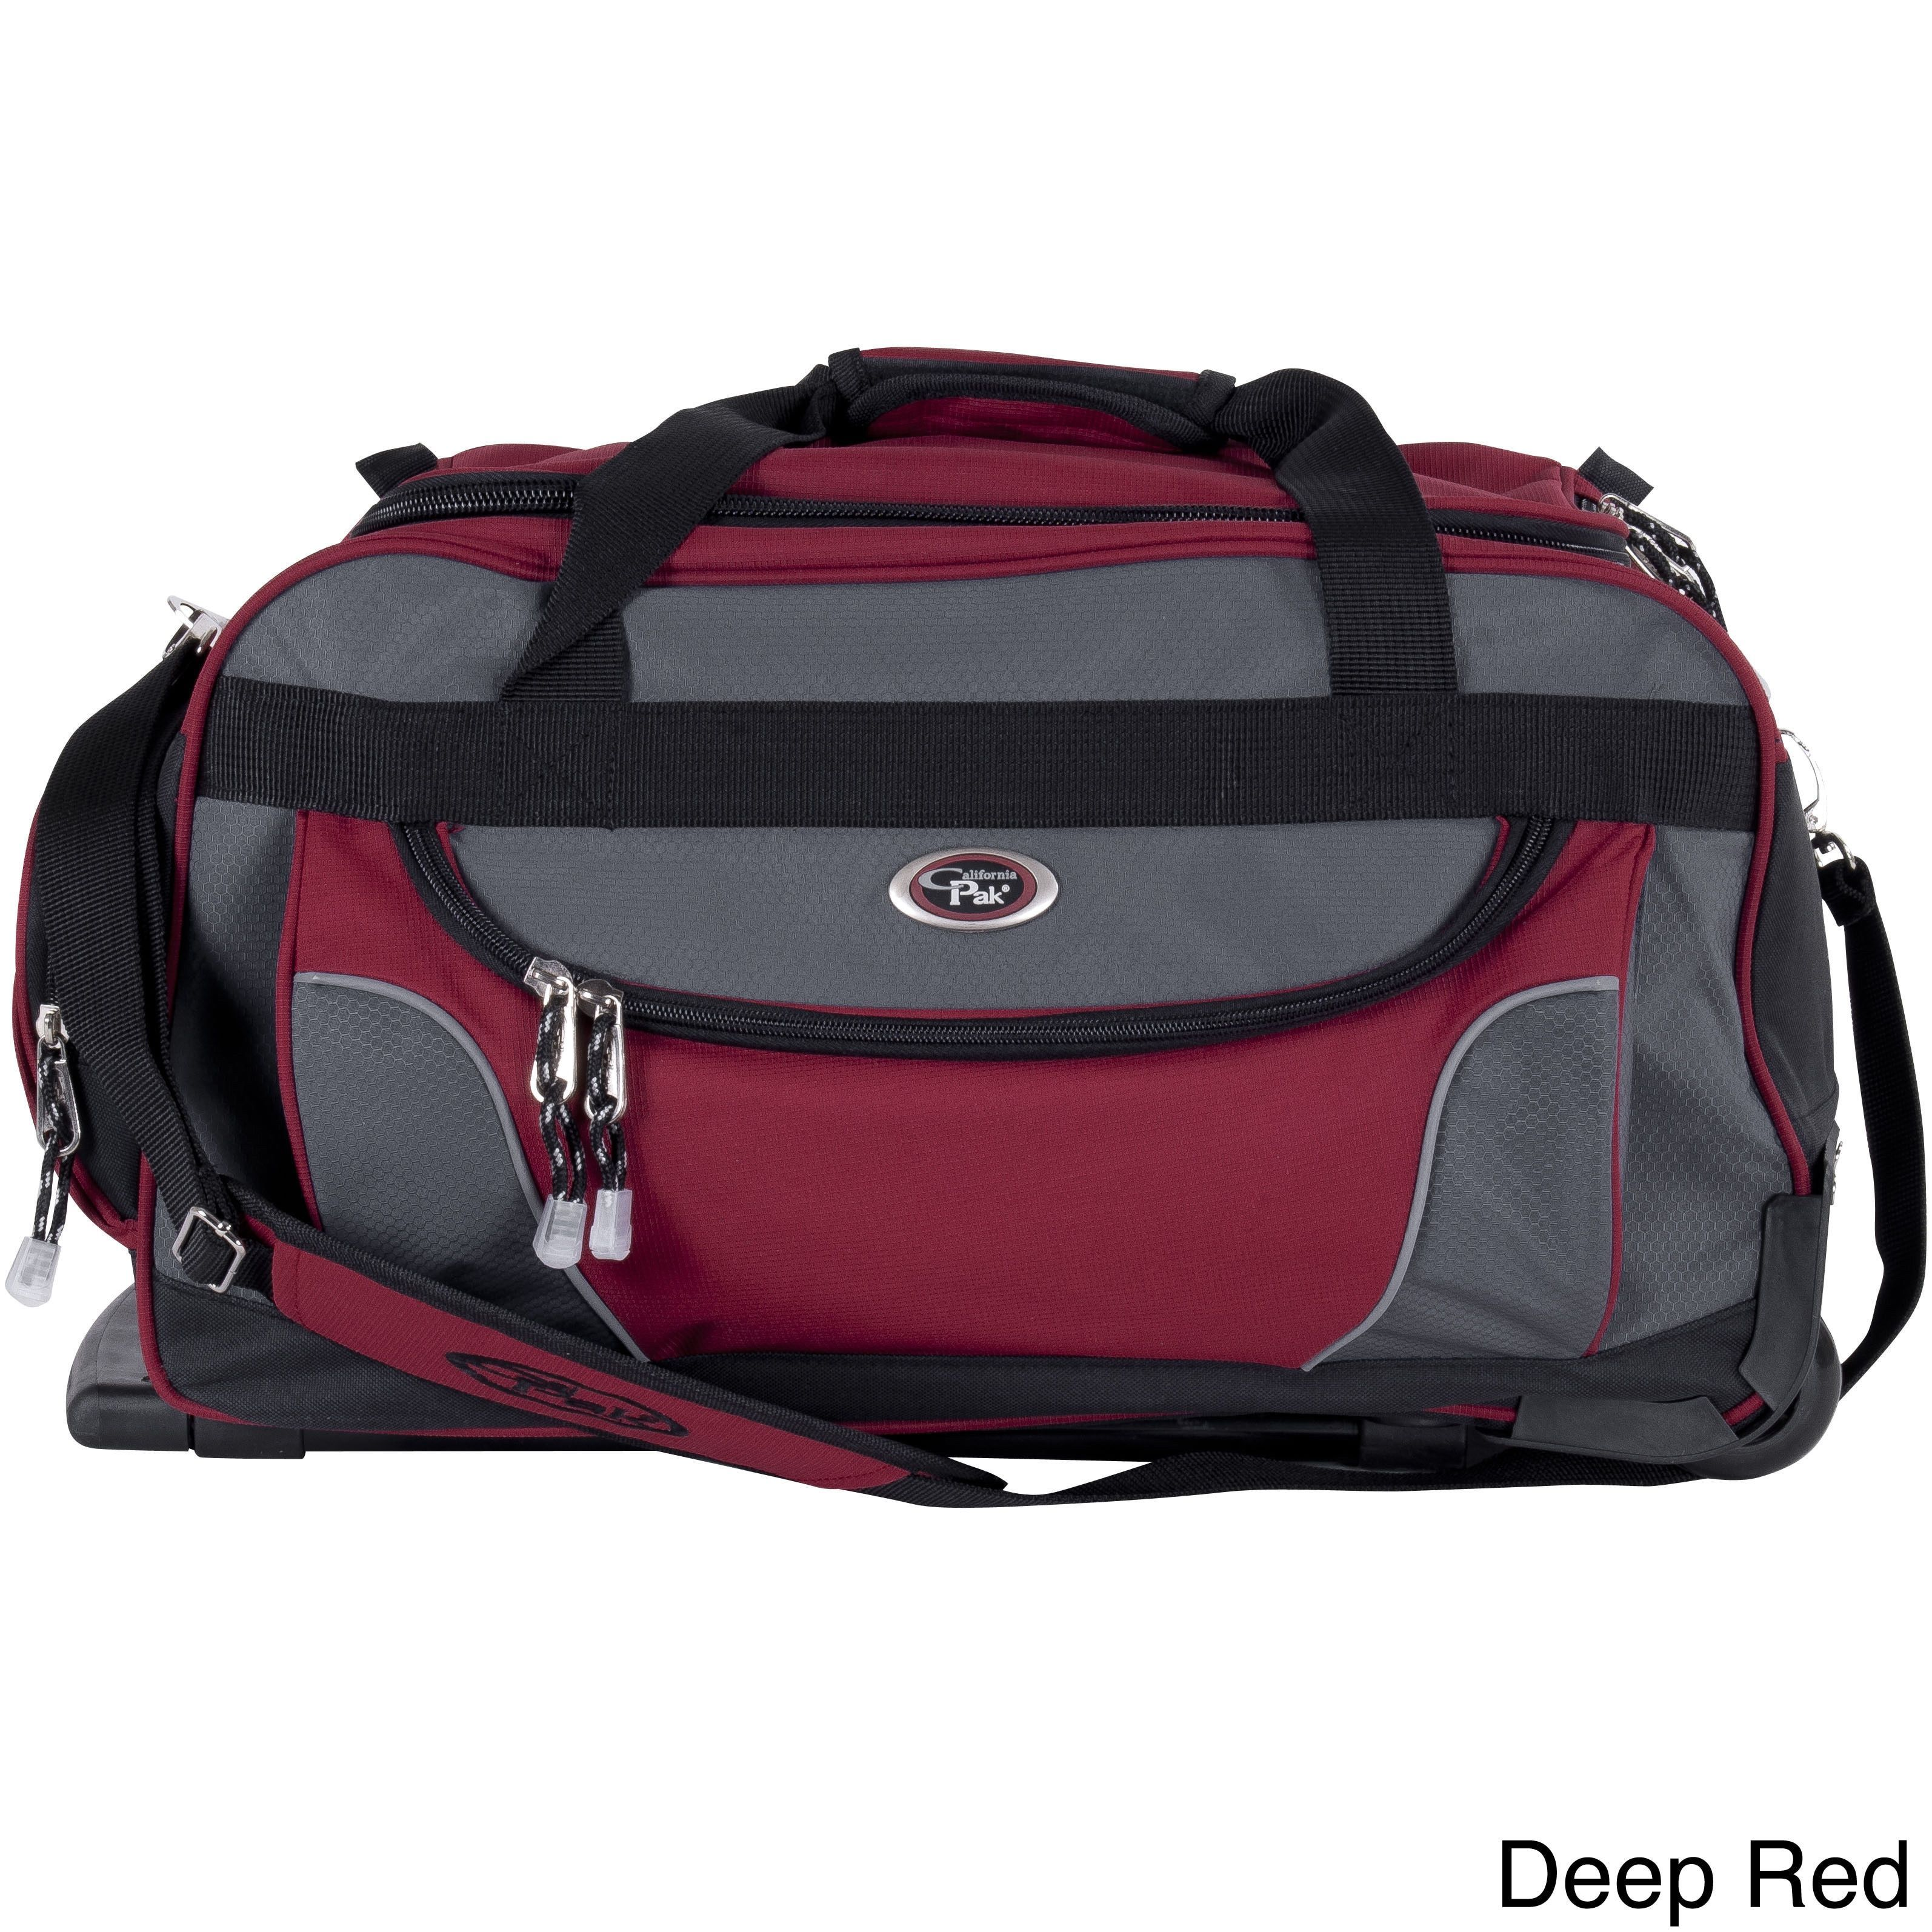 CalPak Champ 21-inch Carry On Rolling Upright Duffel Bag   Products ... 786143062f